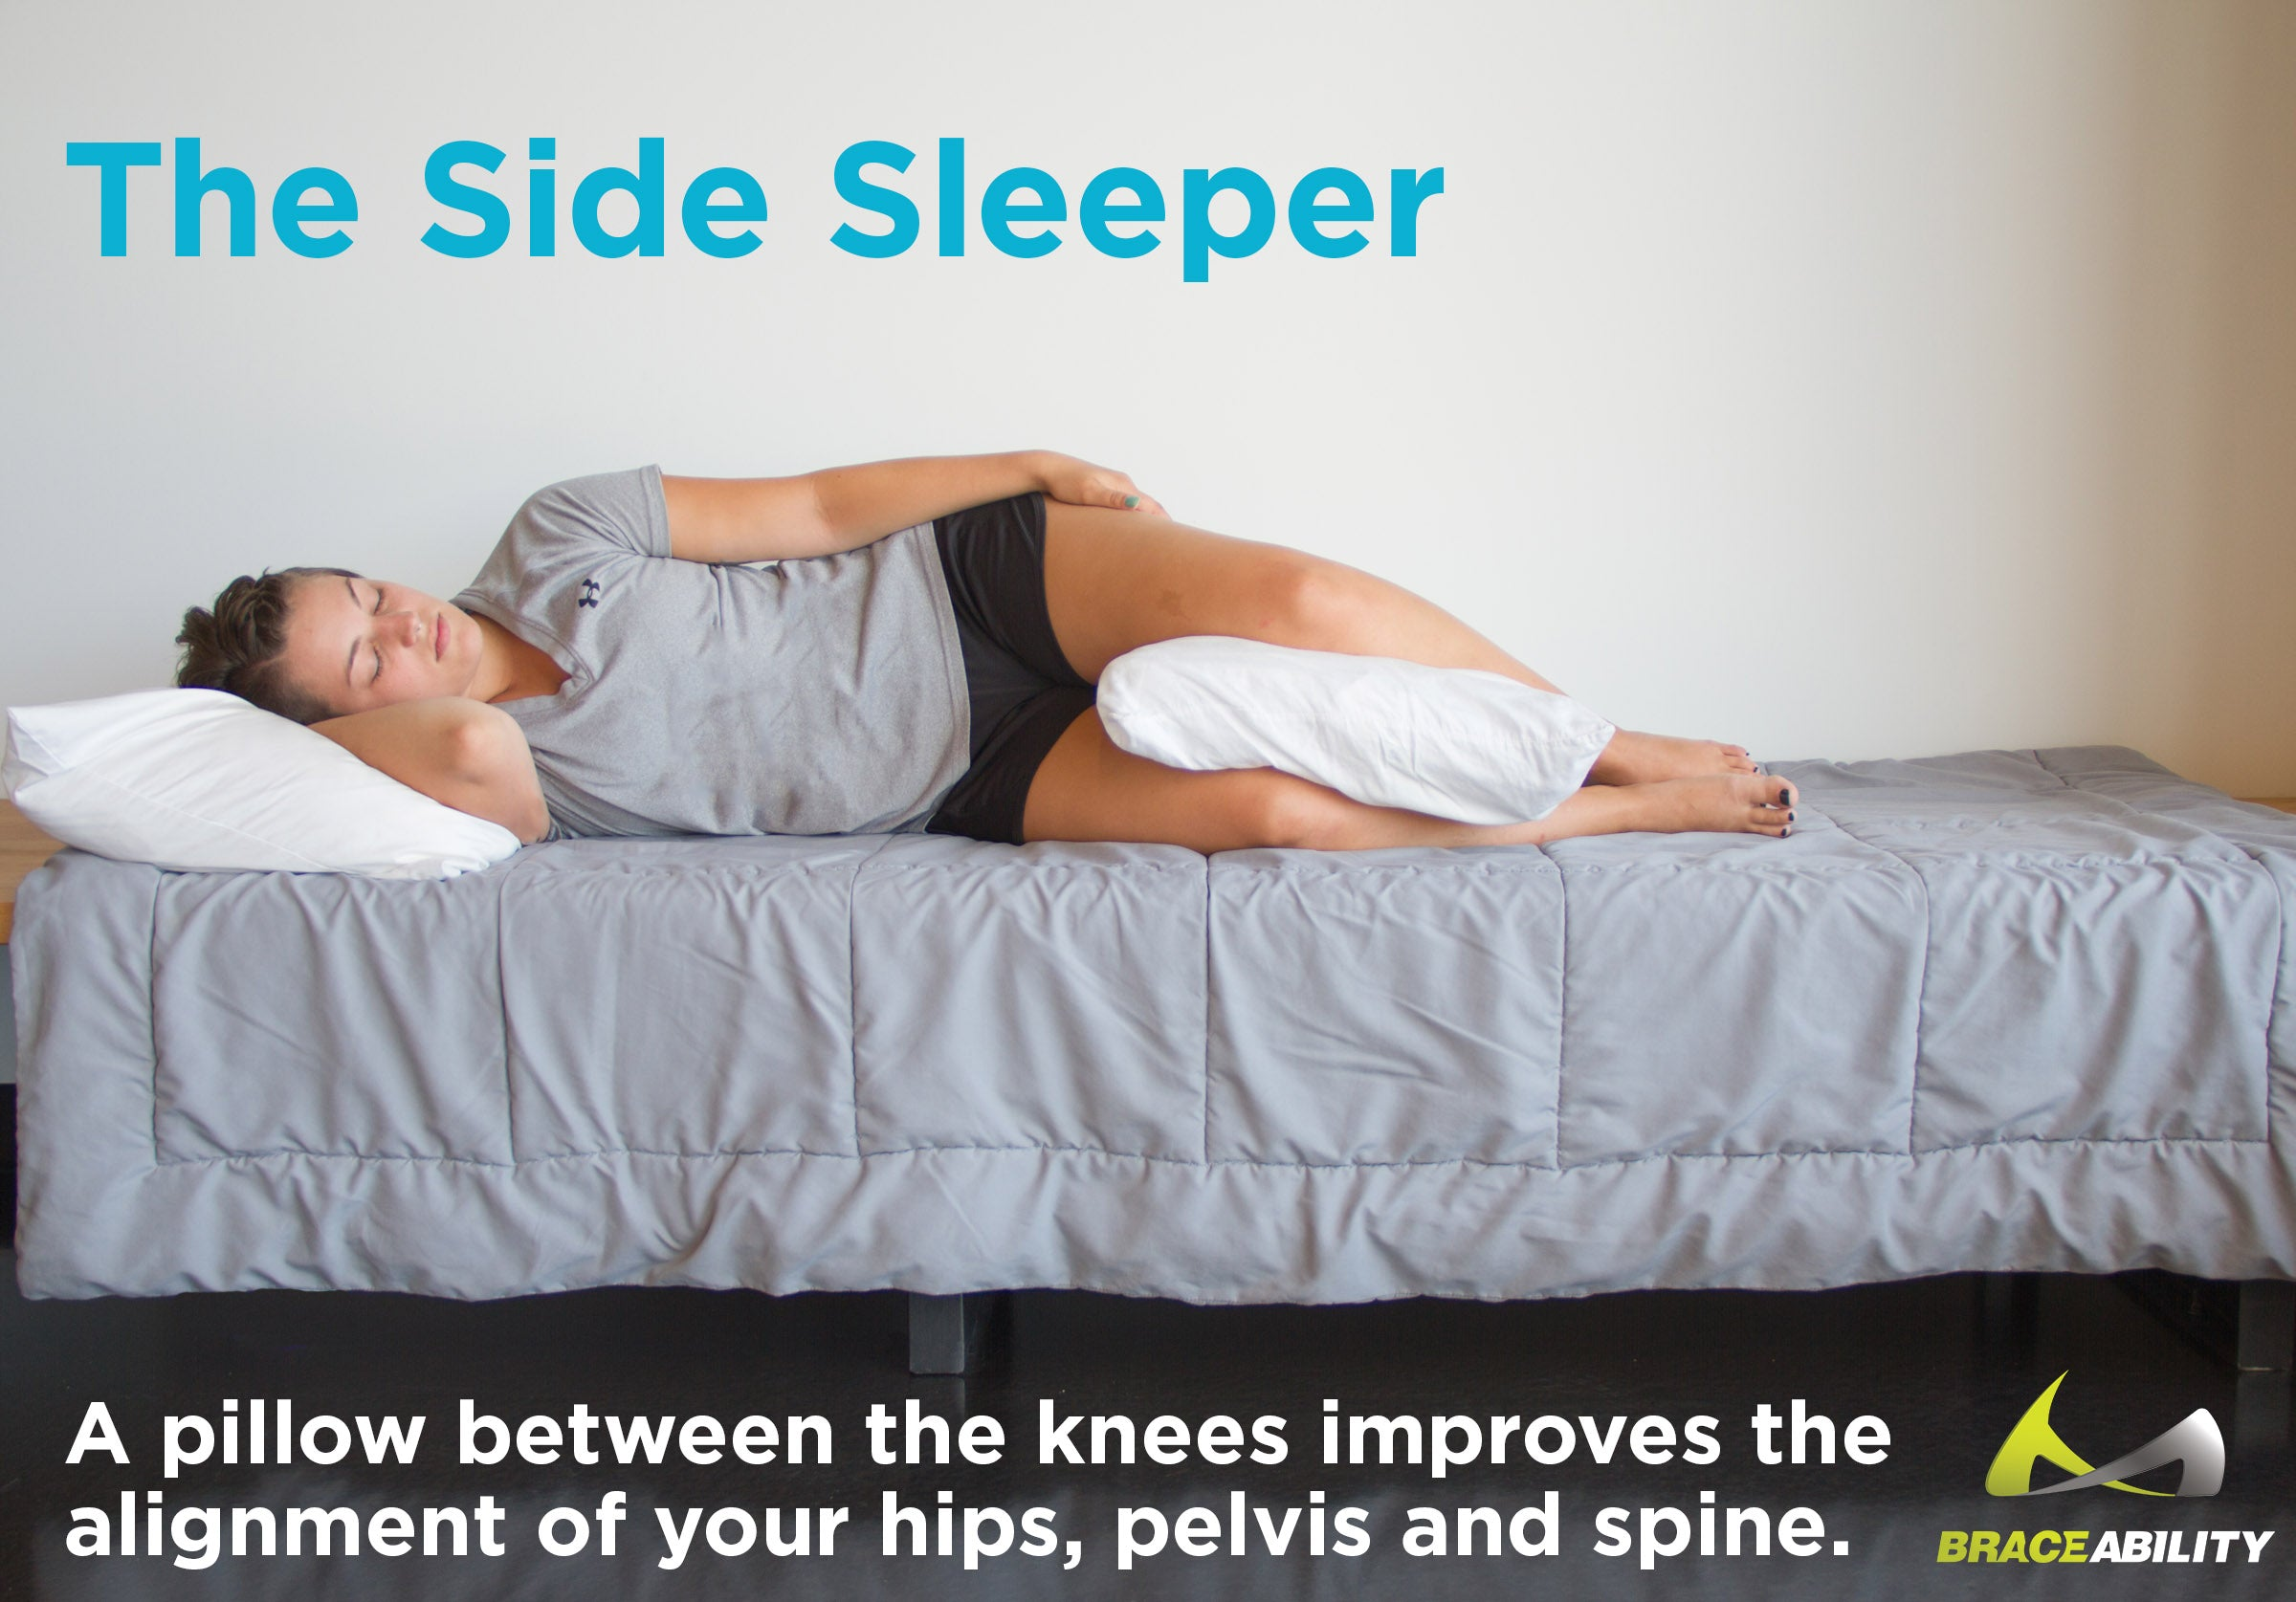 If you sleep on your side with facet arthropathy keep a pillow between your legs to reduce arthritis pain